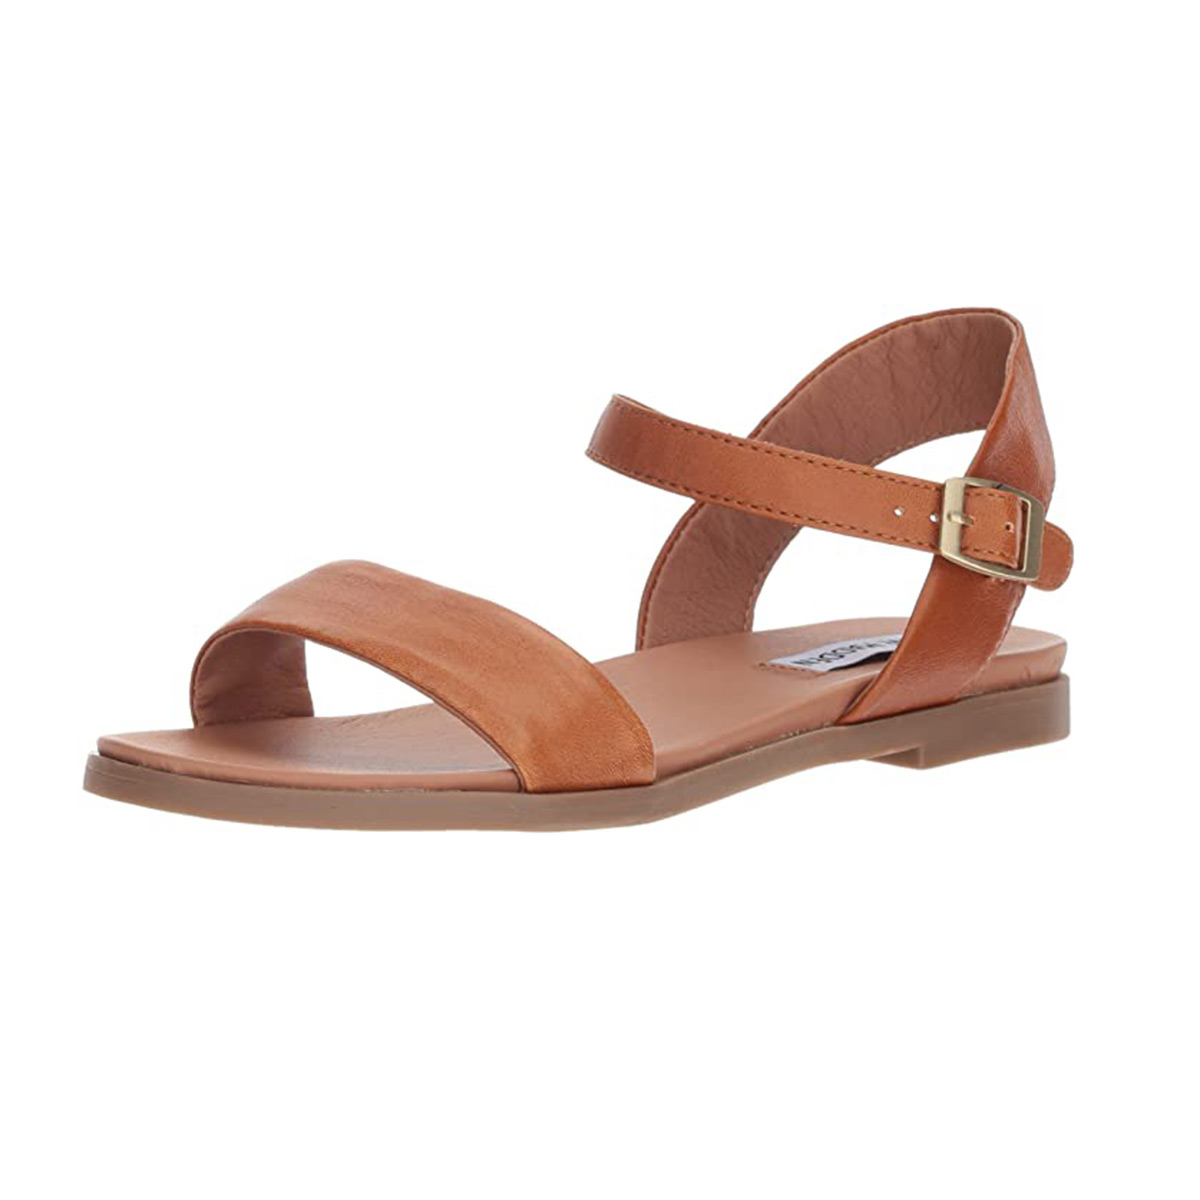 steve madden sandal amazon sale